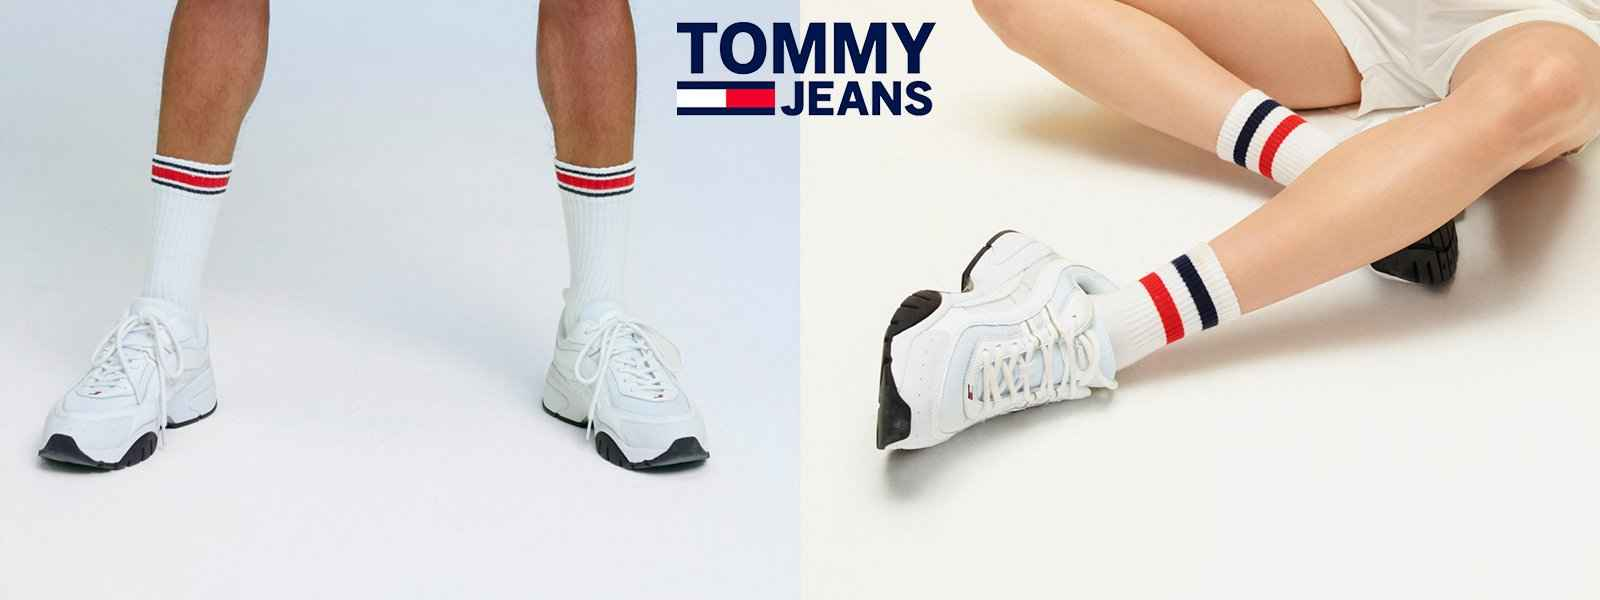 Tommy Jeans: Schuhe